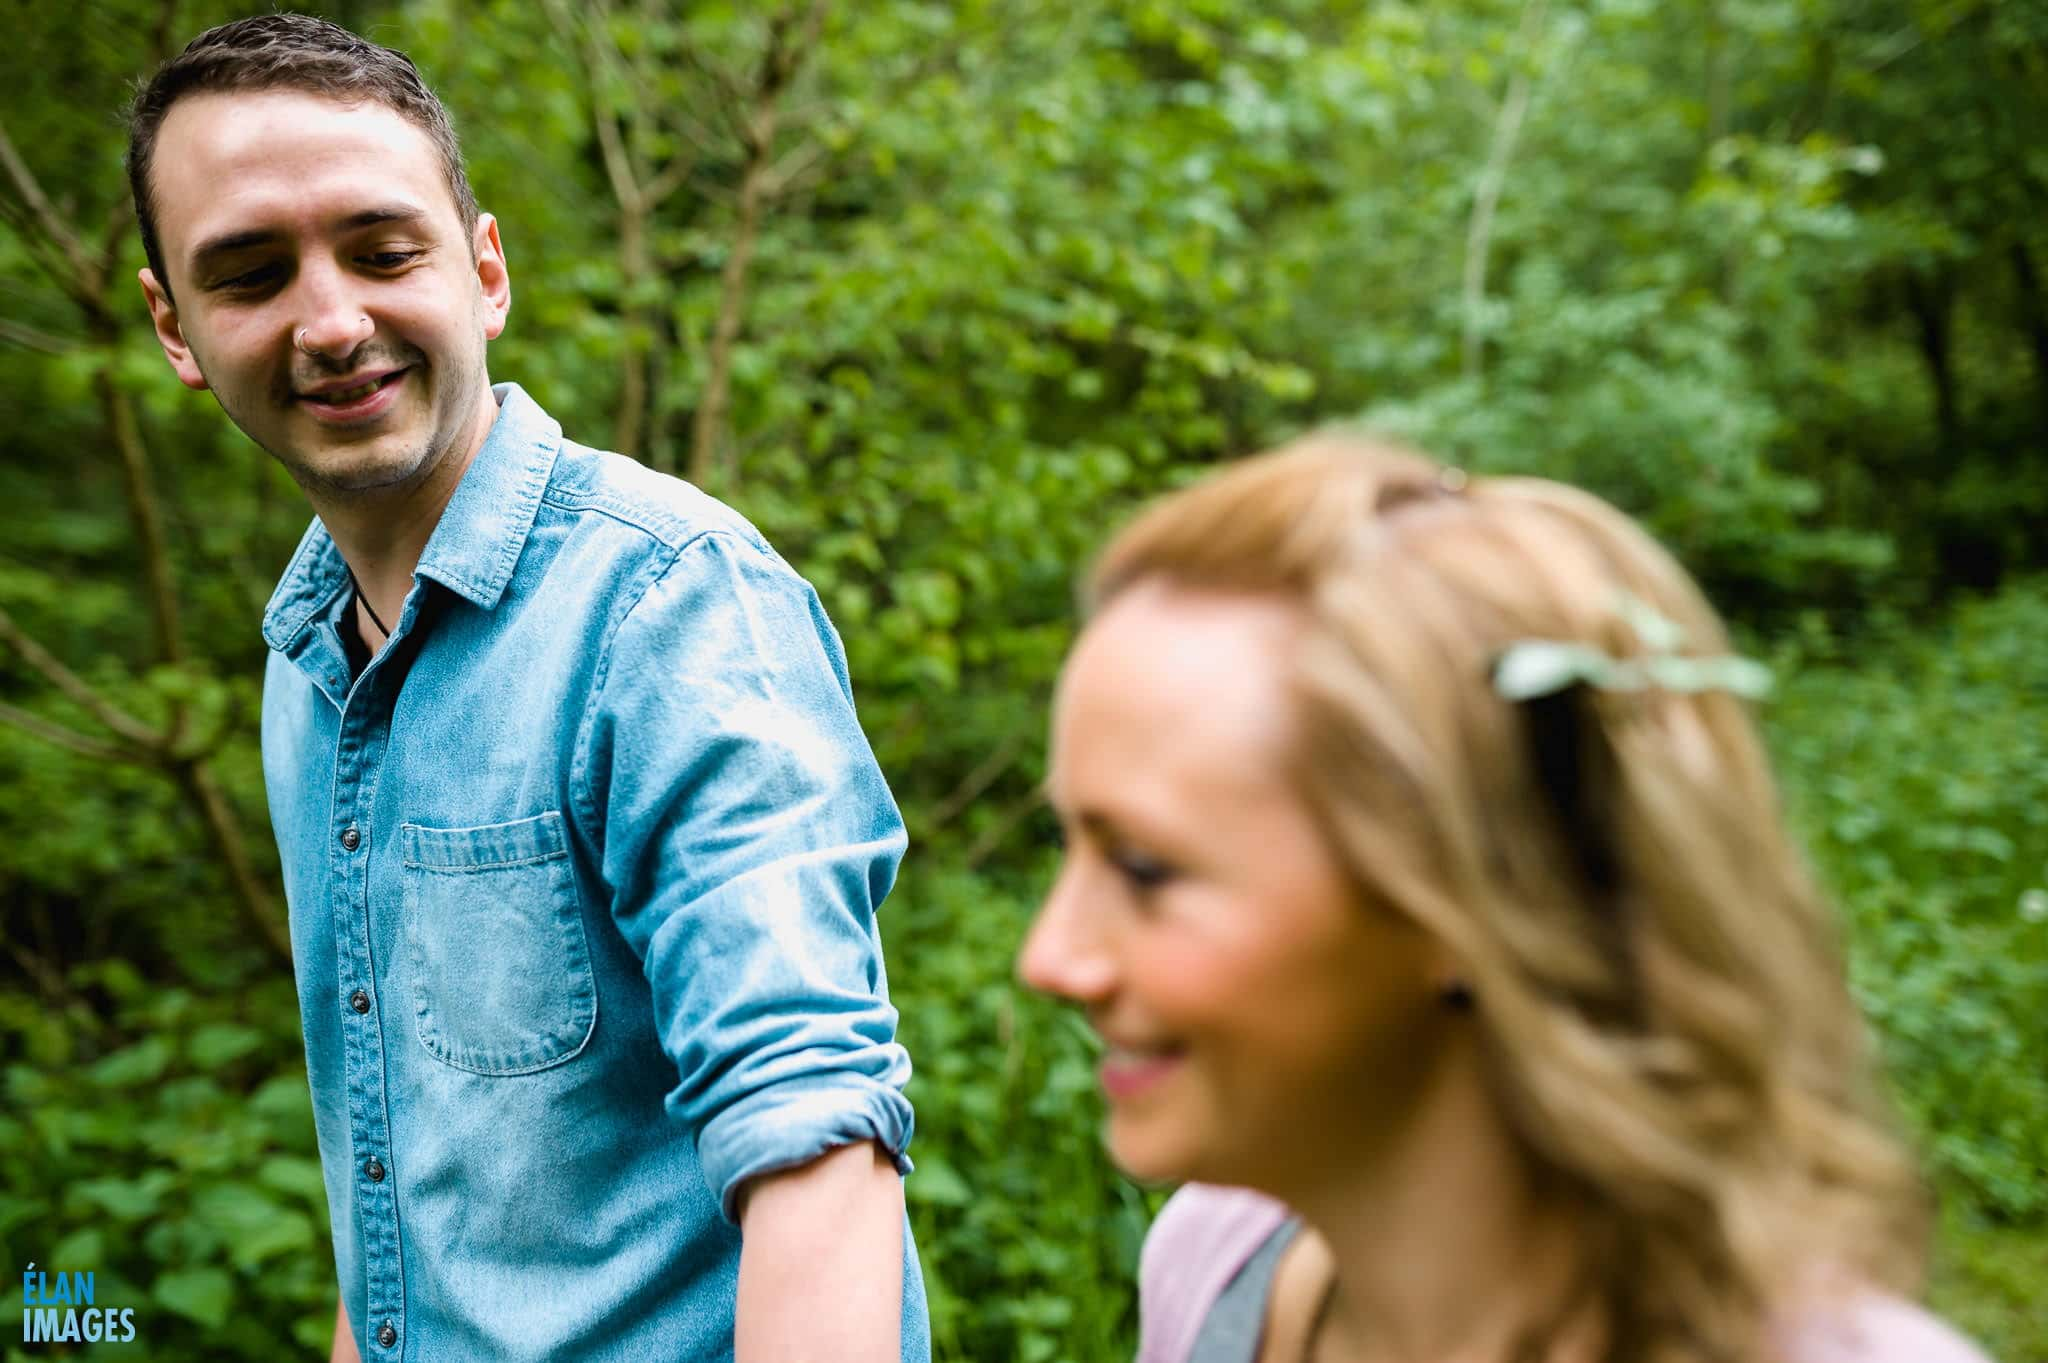 Engagement Photo Shoot in the Bluebell Woods near Bristol 7